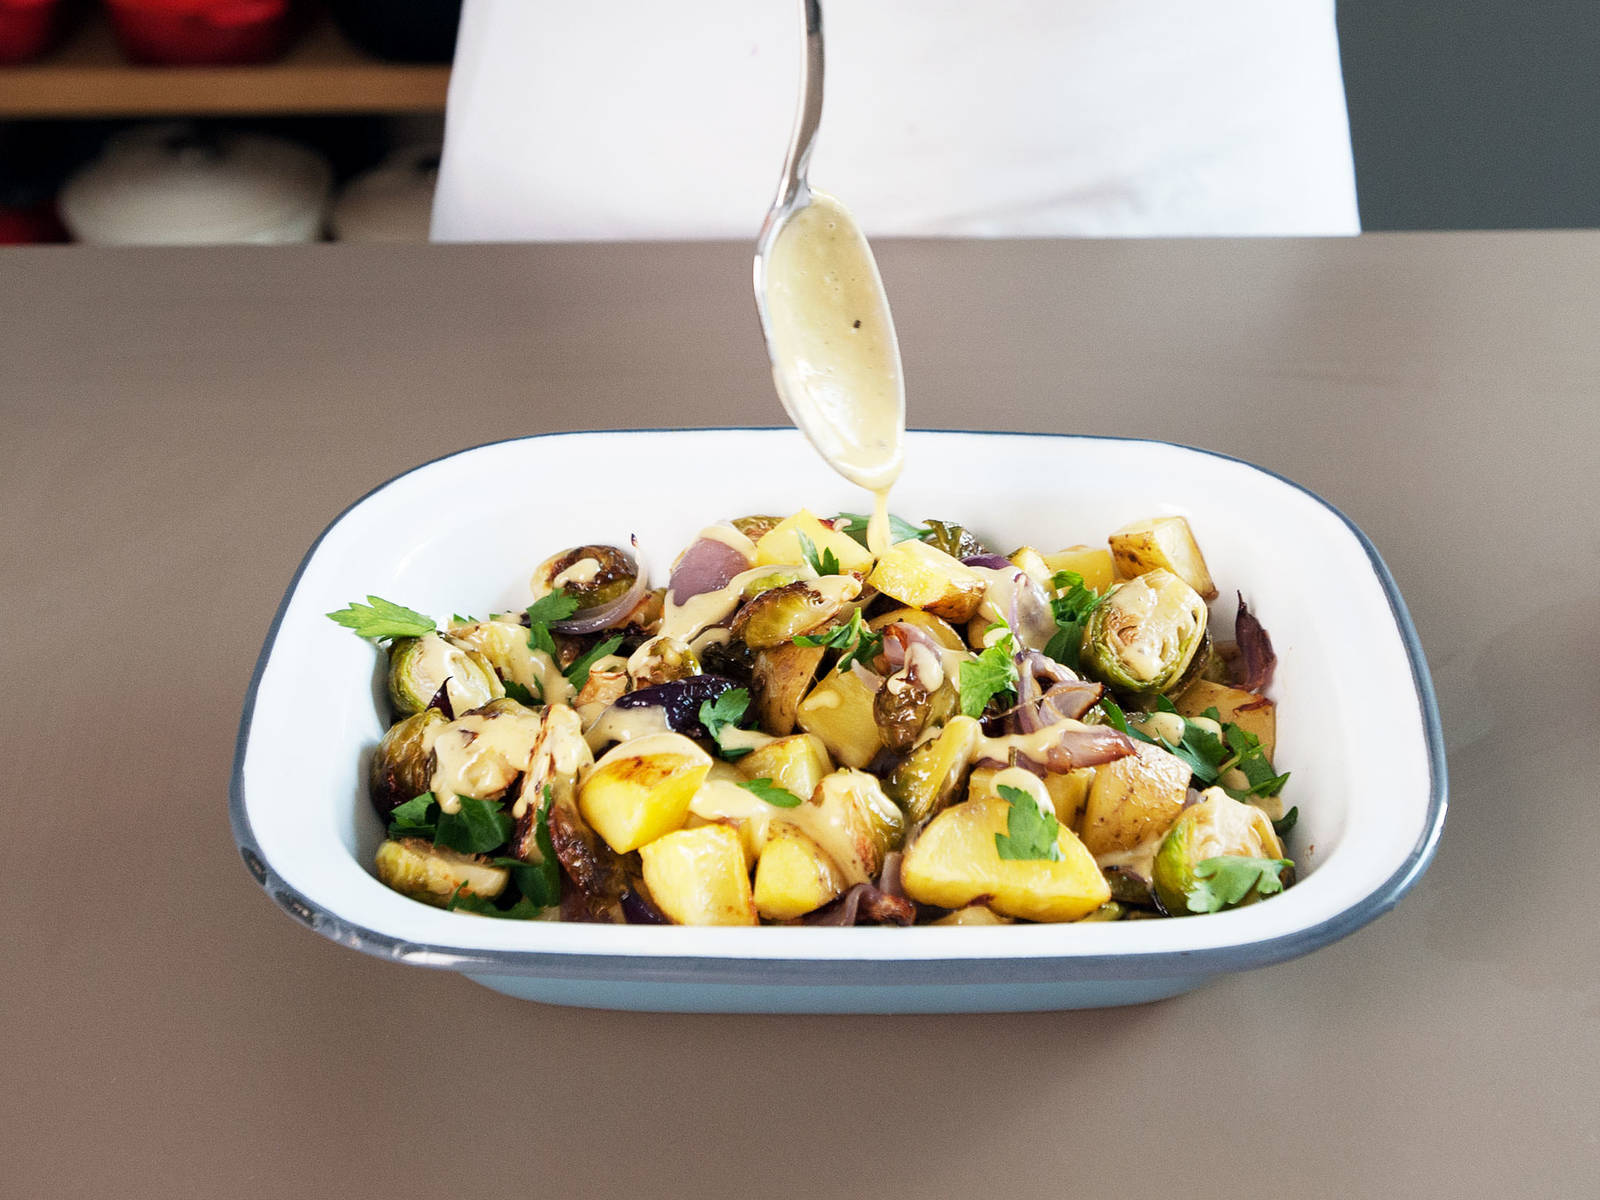 Transfer warm roasted vegetables to serving plate and drizzle with vinaigrette. Garnish with parsley.